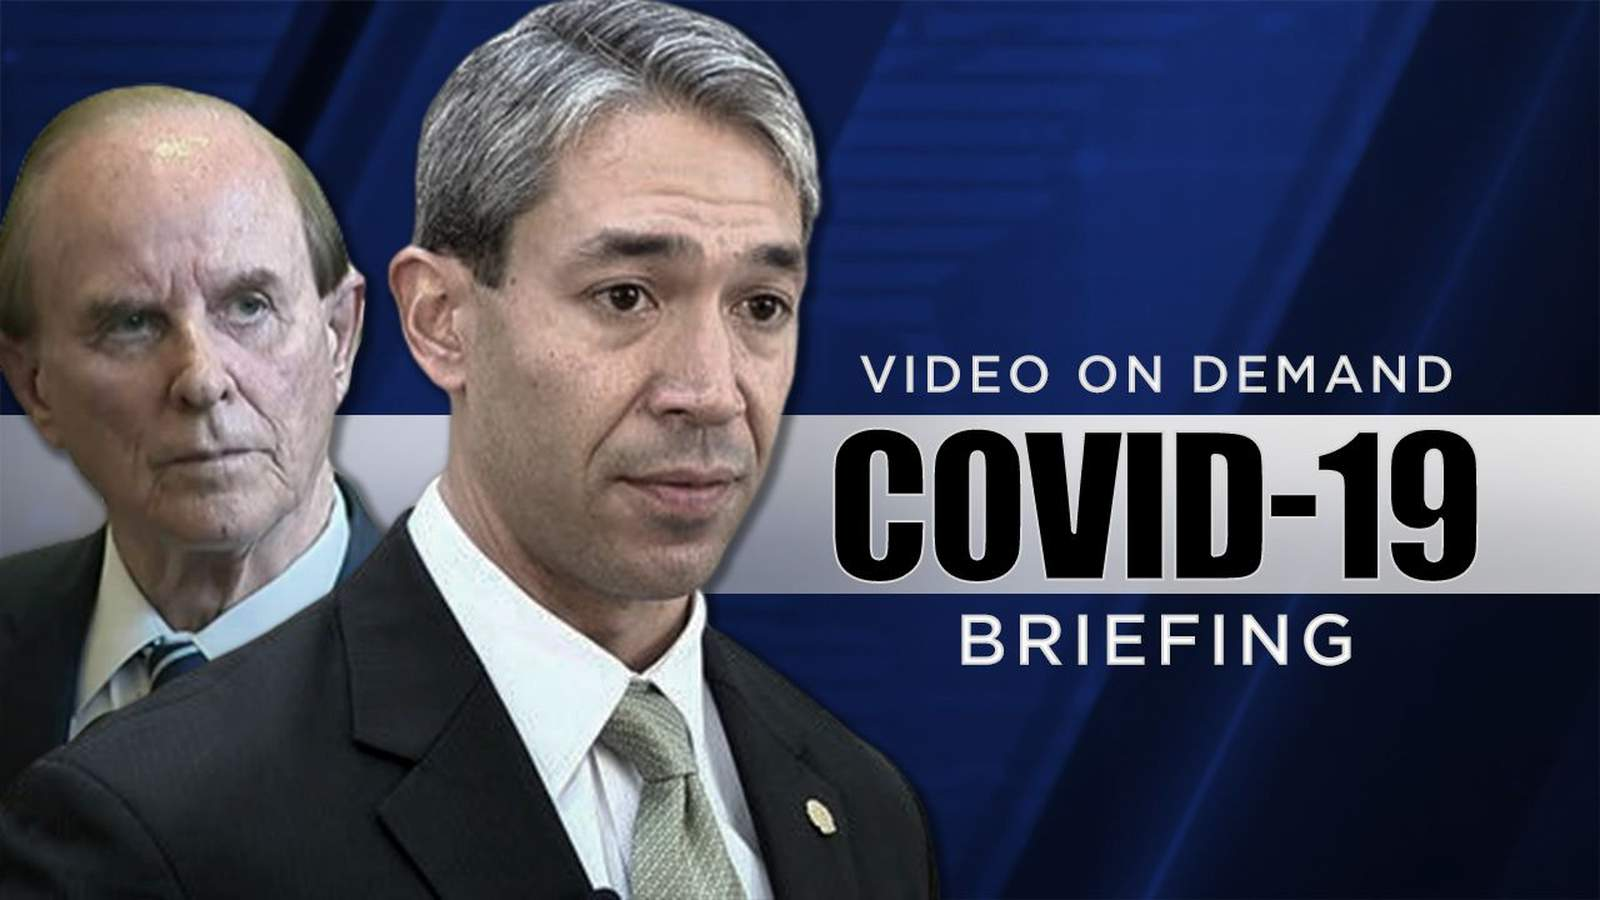 San Antonio Mayor Ron Nirenberg and Bexar County Judge Nelson Wolff updated the community about the local response to COVID-19 in their daily briefing Wednesday night.